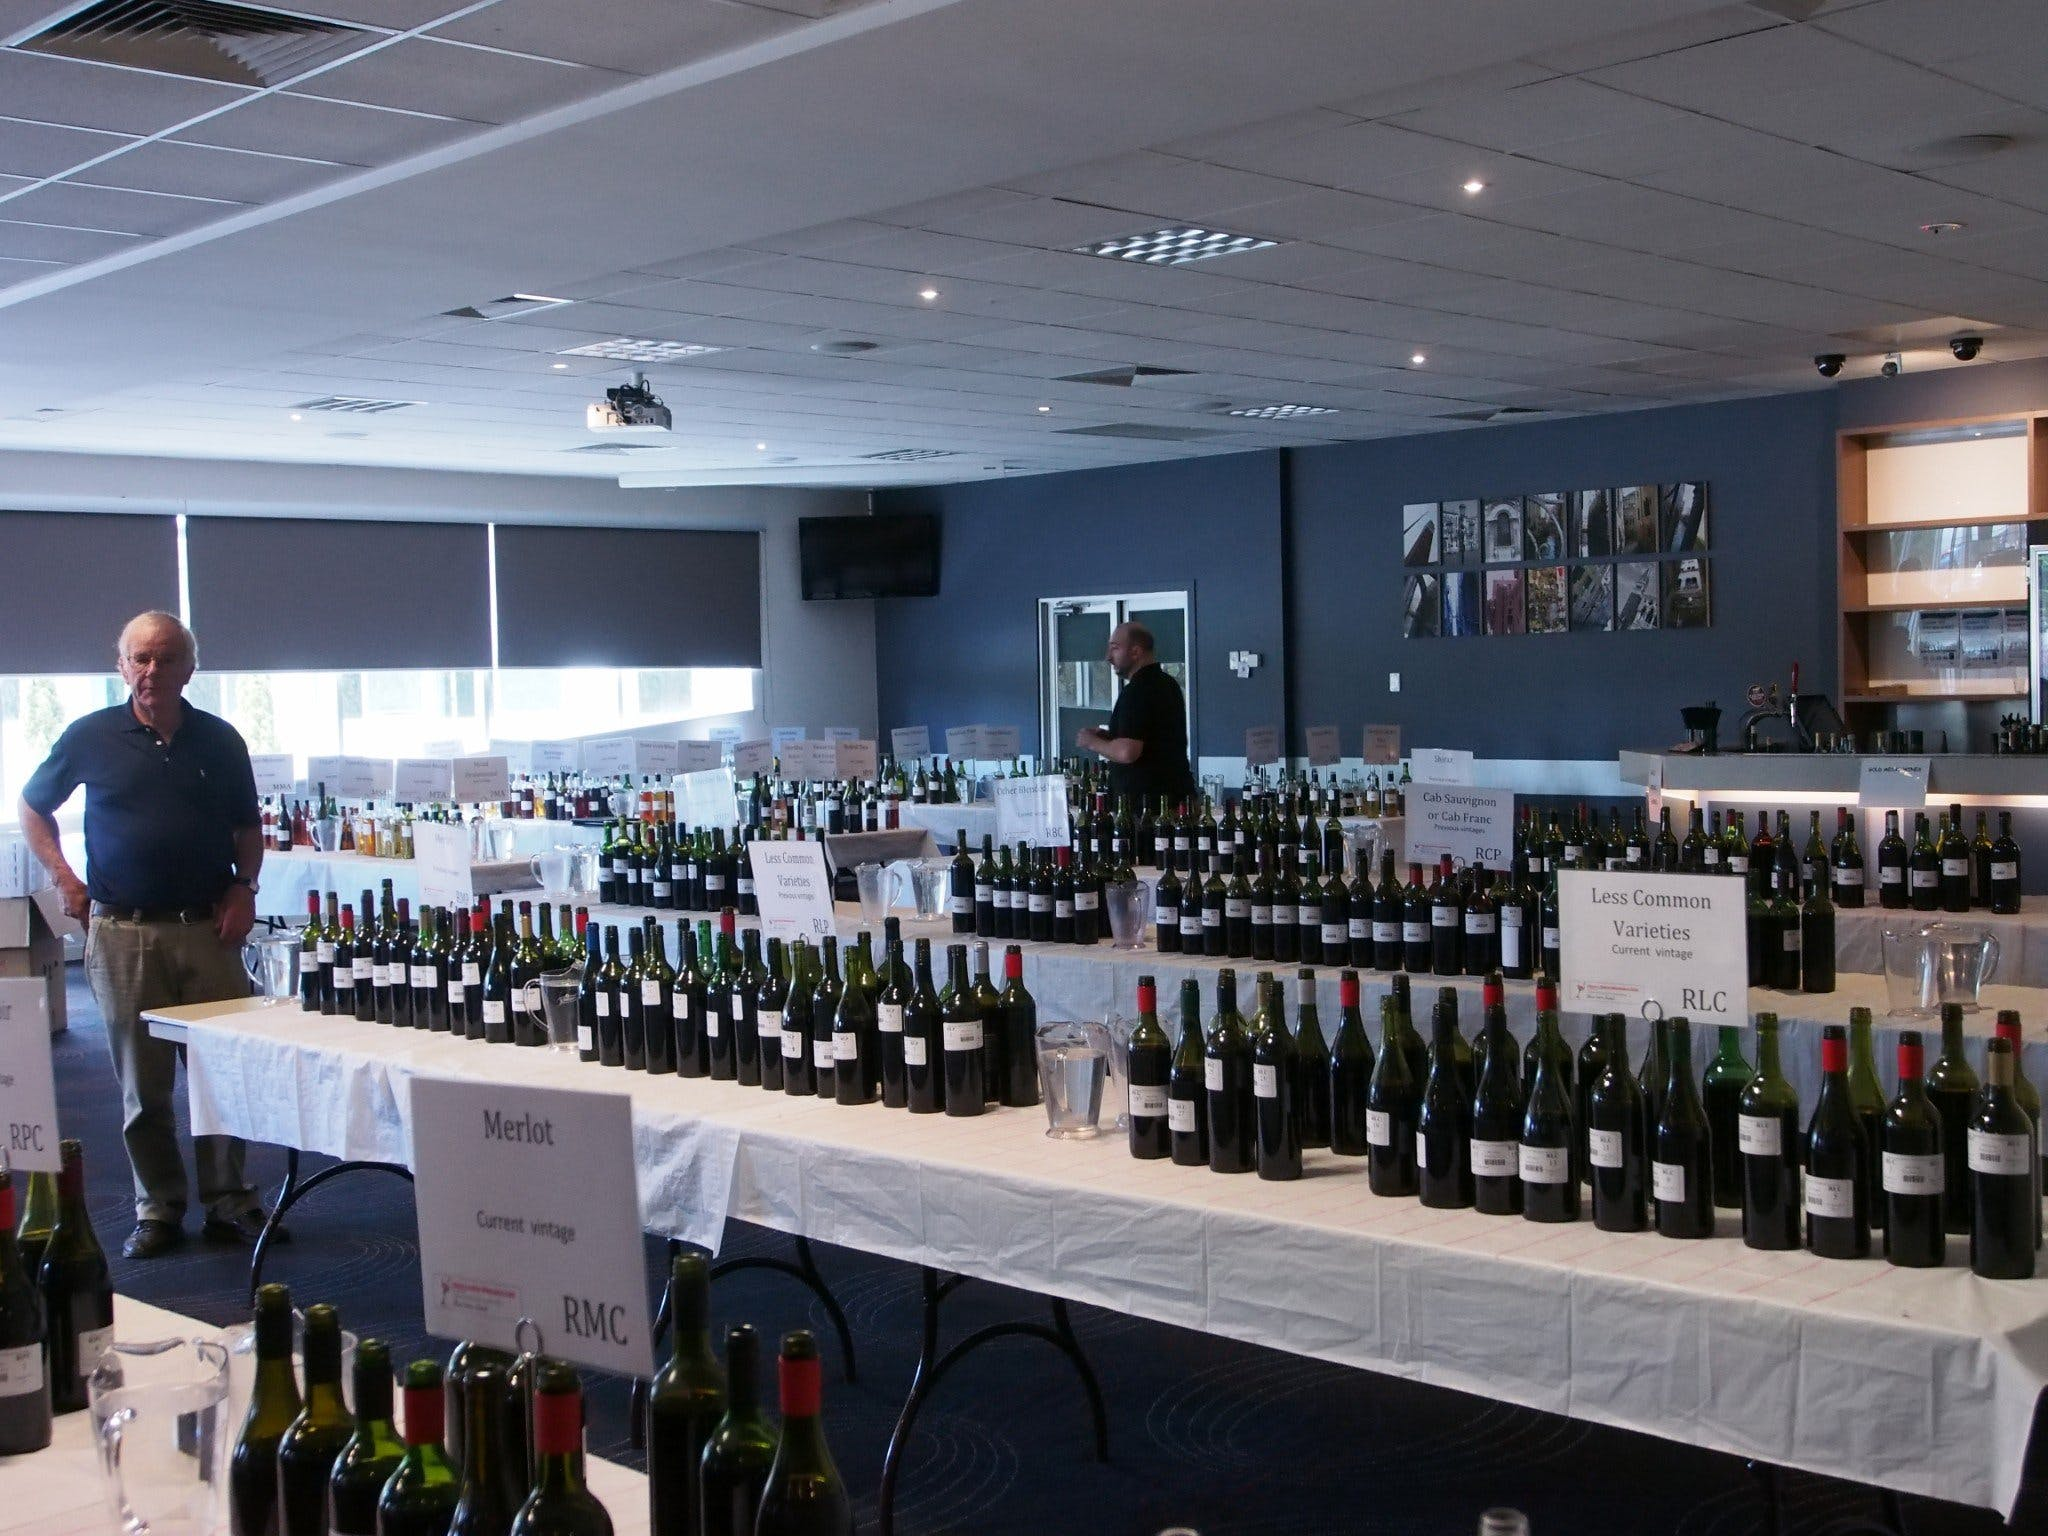 Eltham and District Wine Guild Annual Wine Show - 51st Annual Show - Whitsundays Tourism